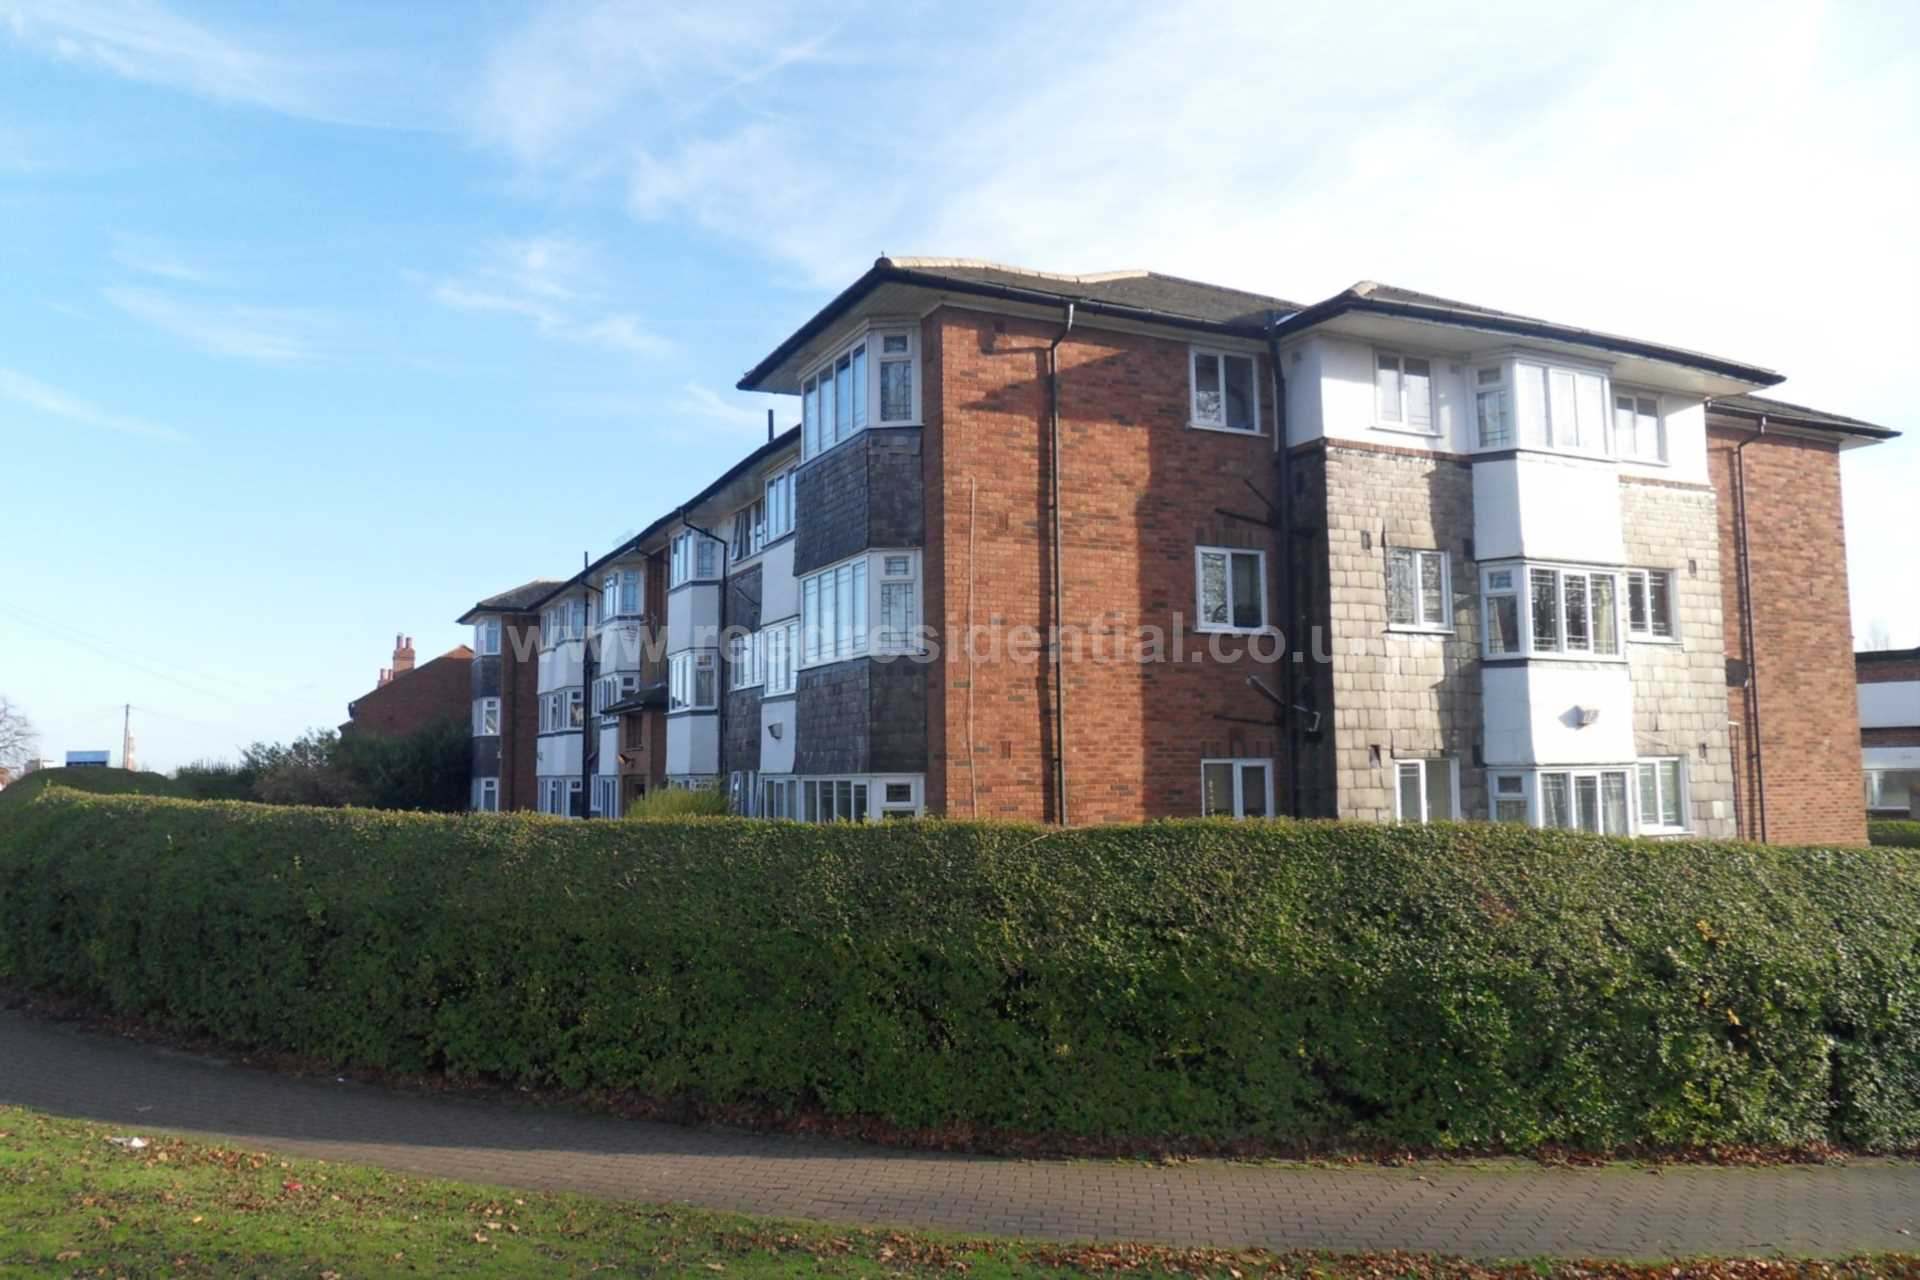 2 Bedroom Apartment, Gibbins Road, Selly Oak